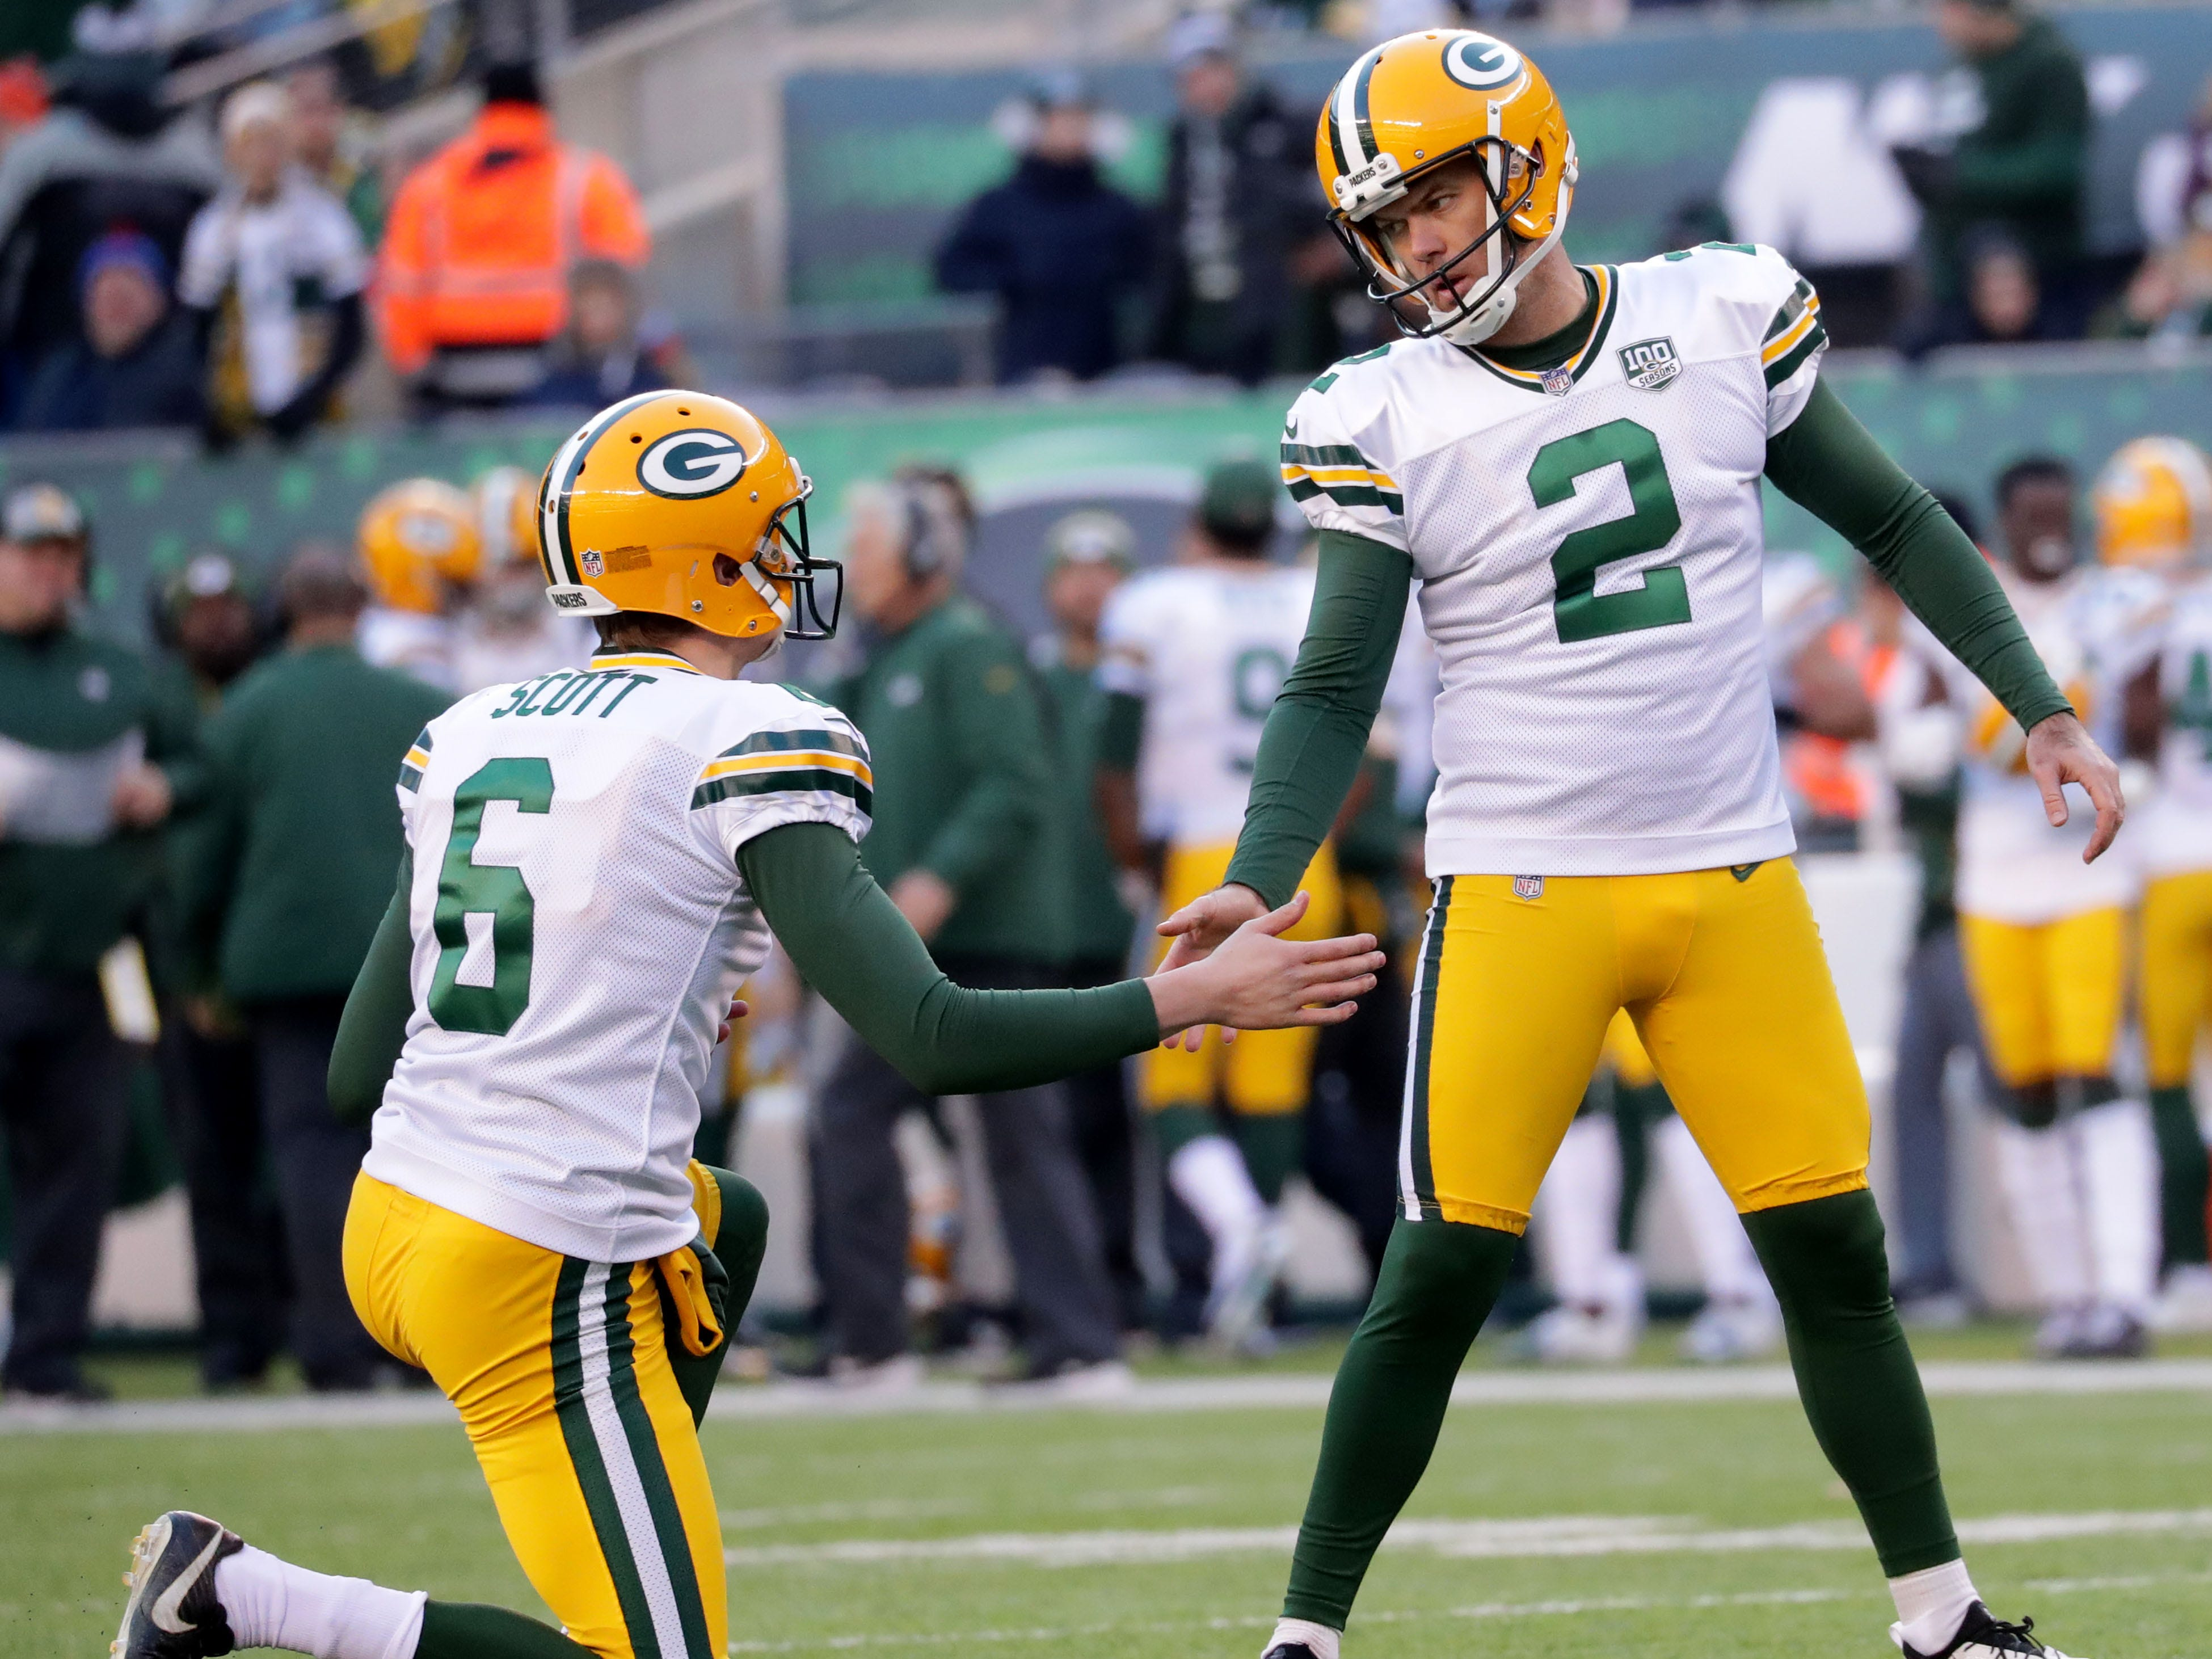 Green Bay Packers' Mason Crosby is congratulated by J.K. Scott for a field goal during the 2nd half of Packers 44-38 overtime win against the New York Jets at MetLife Stadium Sunday, Dec. 23, 2018, in East Rutherford.